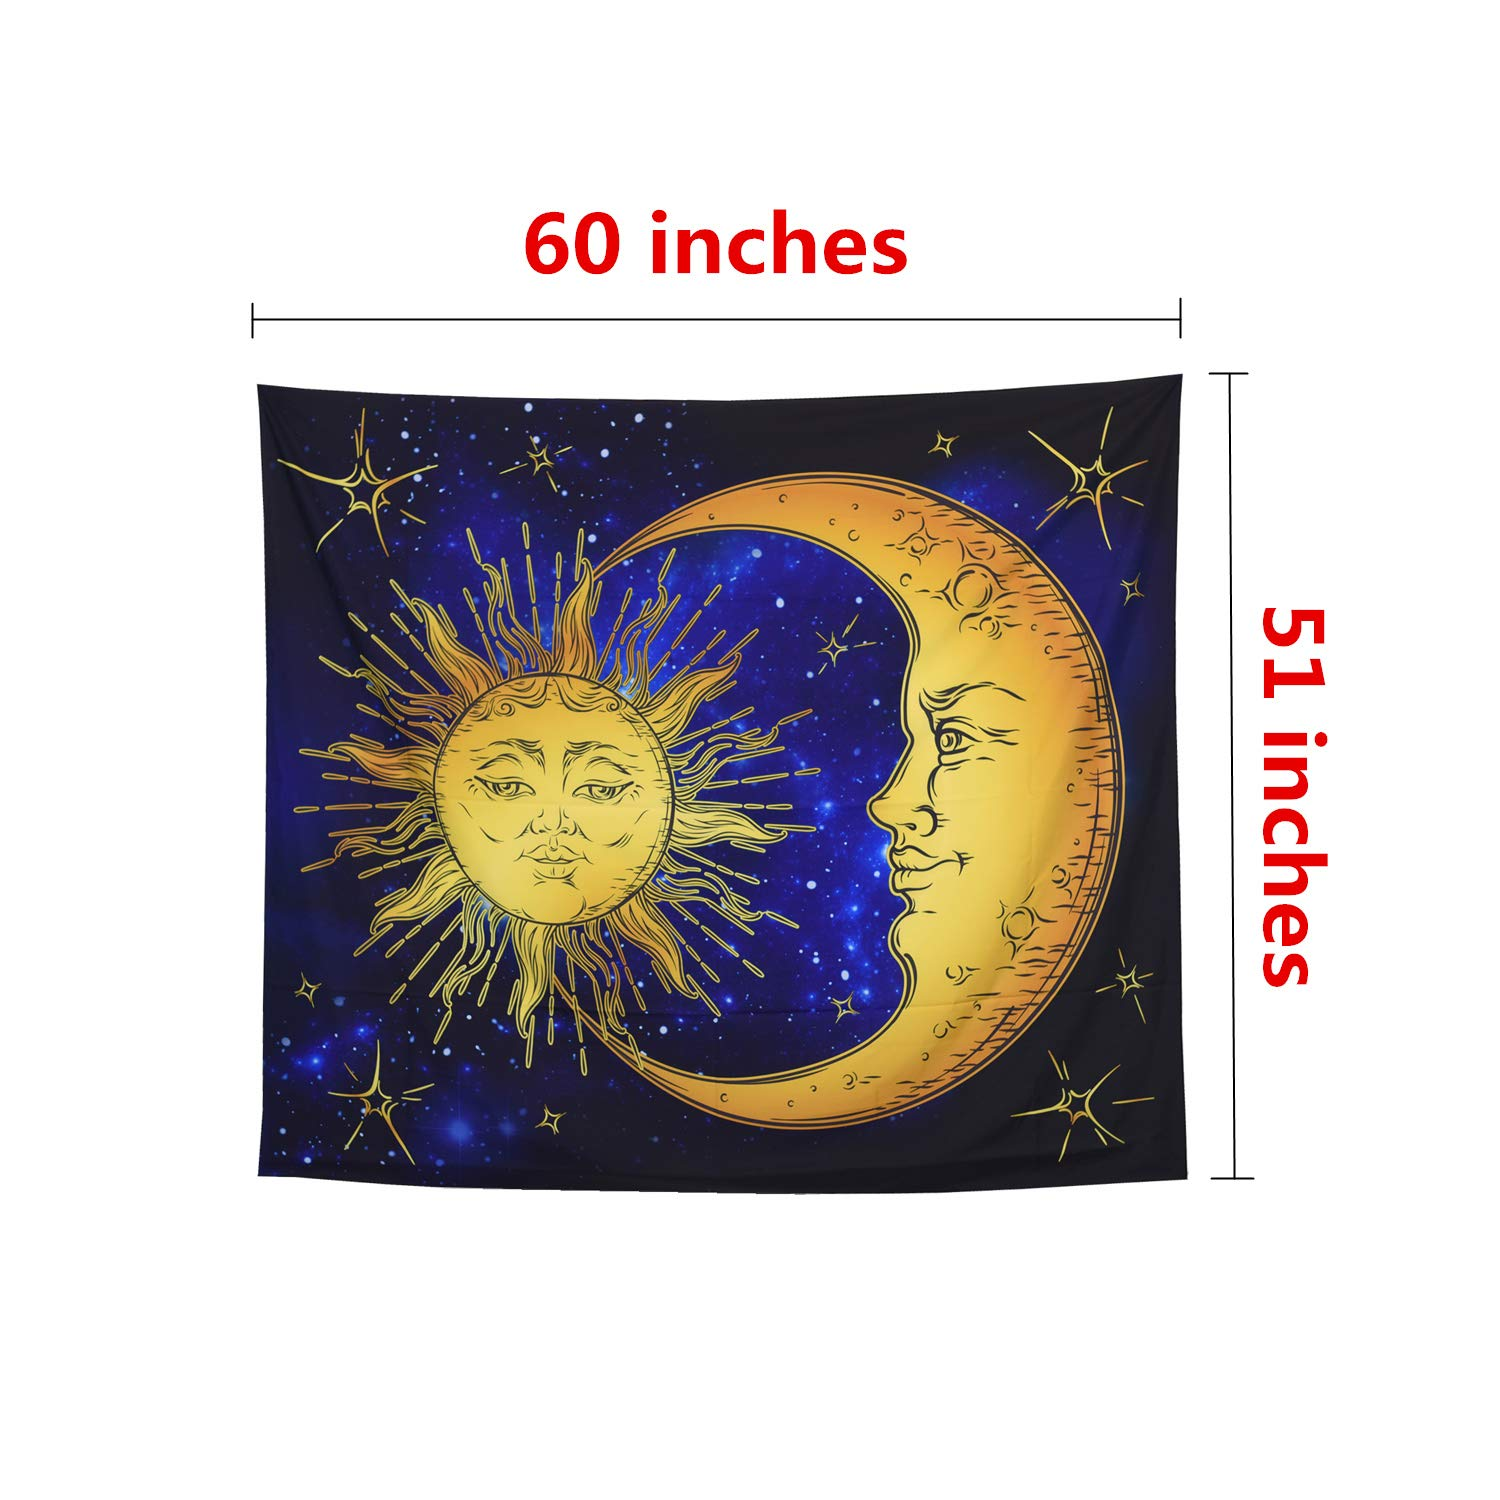 ECONIE Cat Tapestry Wall Hanging Tapestry Wall Art Decor Beach Throw Table Runner//Cloth 51 x 60Inches 10